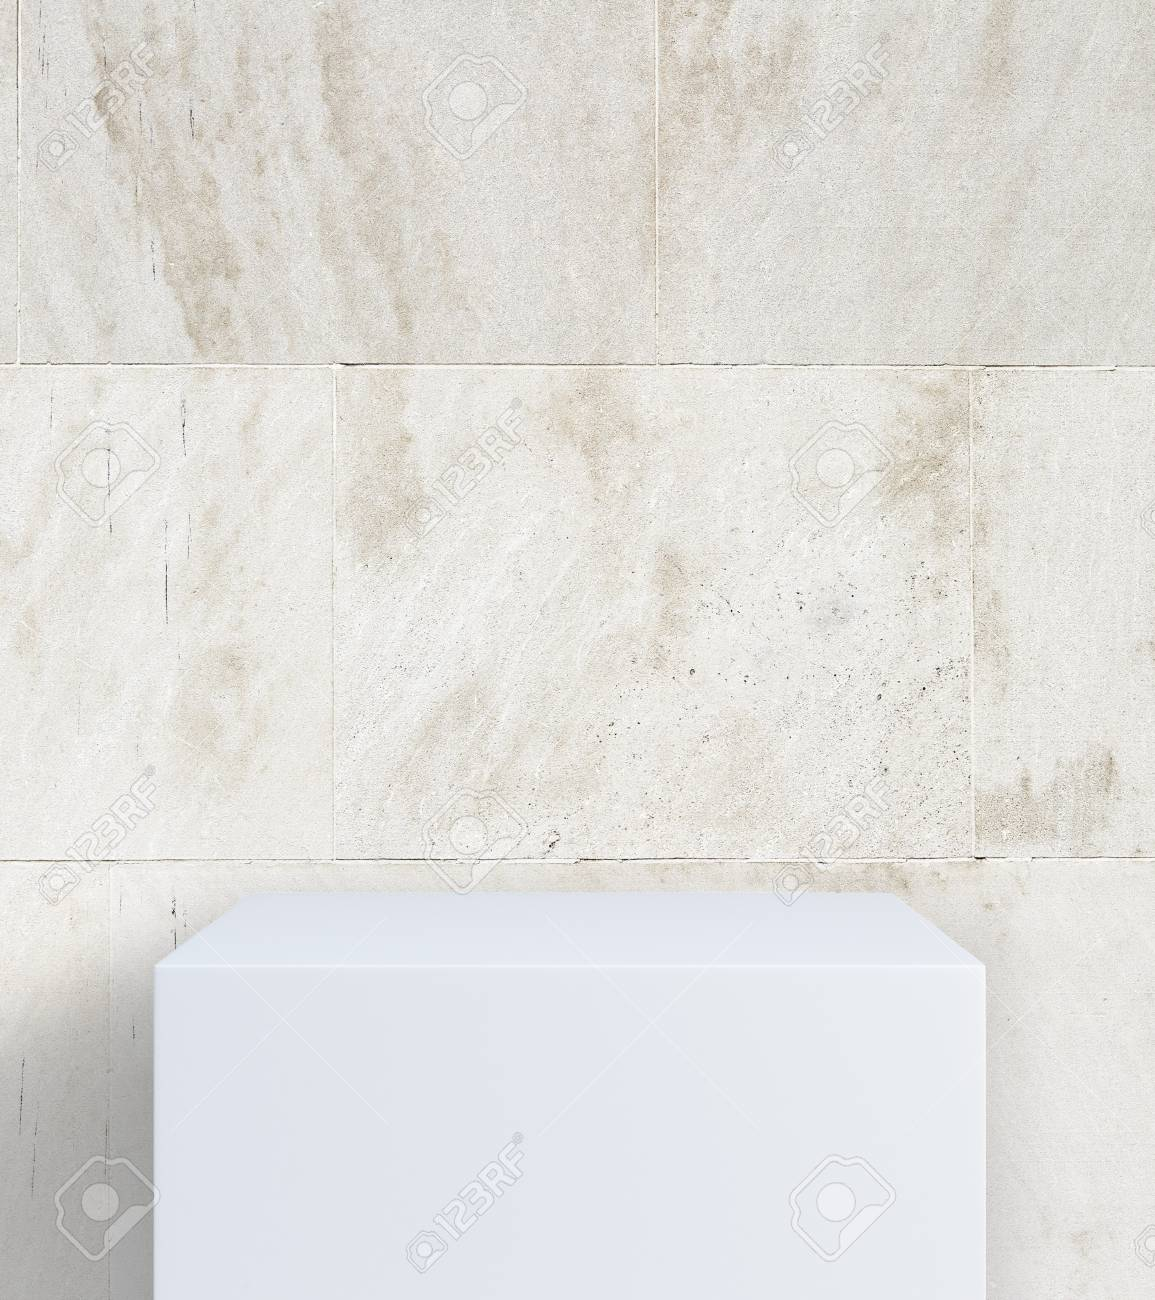 Piastrelle Concrete 3d Empty White Stand On Concrete Tile Background Mock Up 3d Rendering